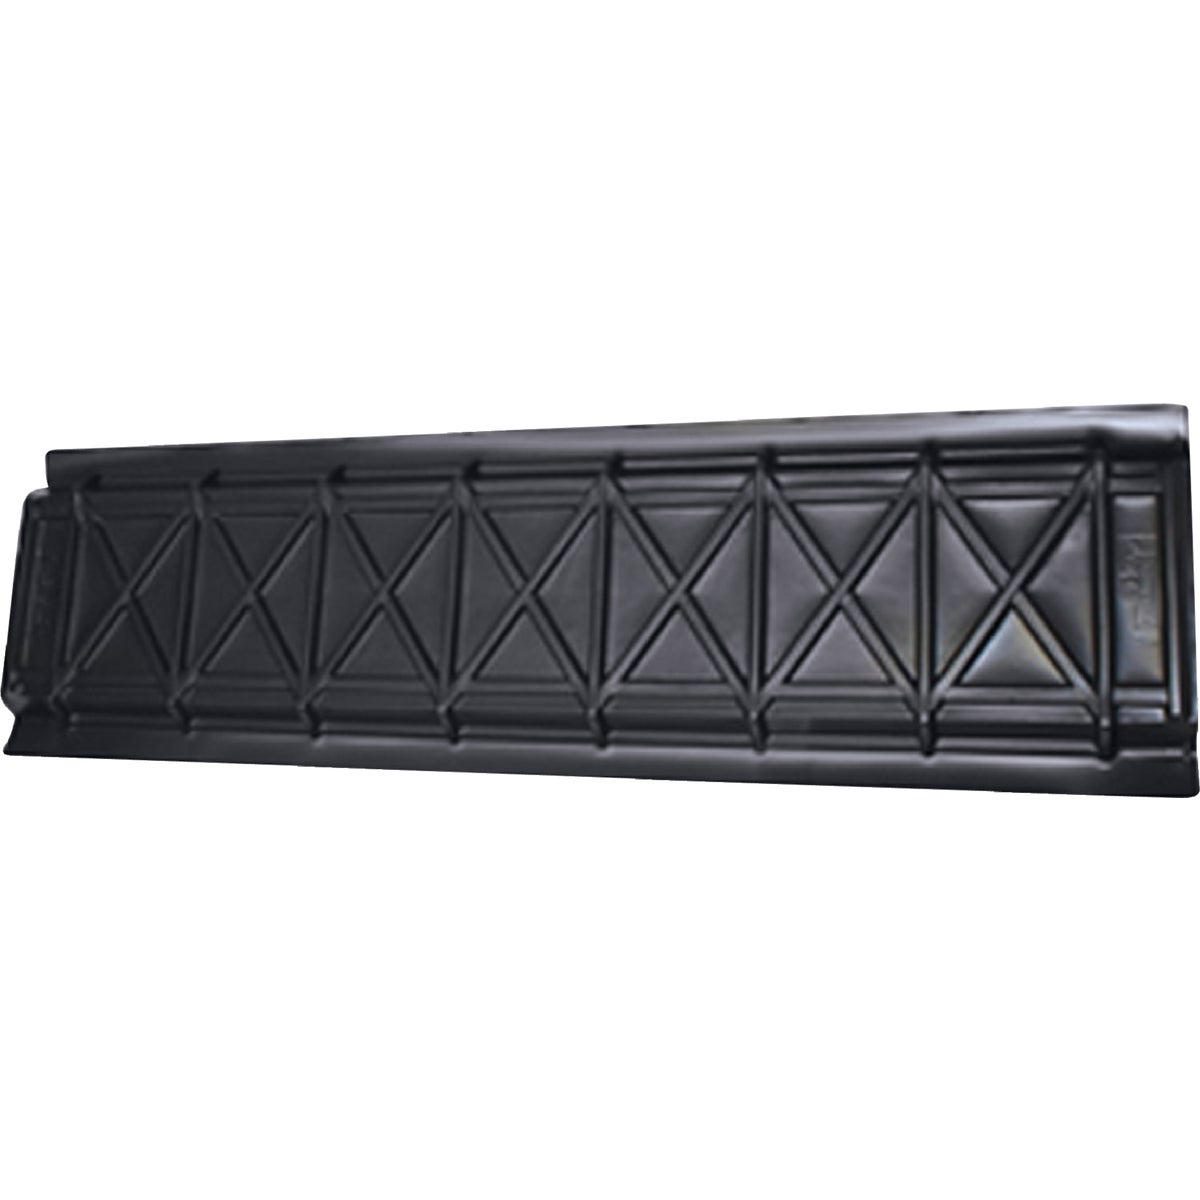 PROVENT ATTIC RAFTR VENT - UPV14480 by Ado Products